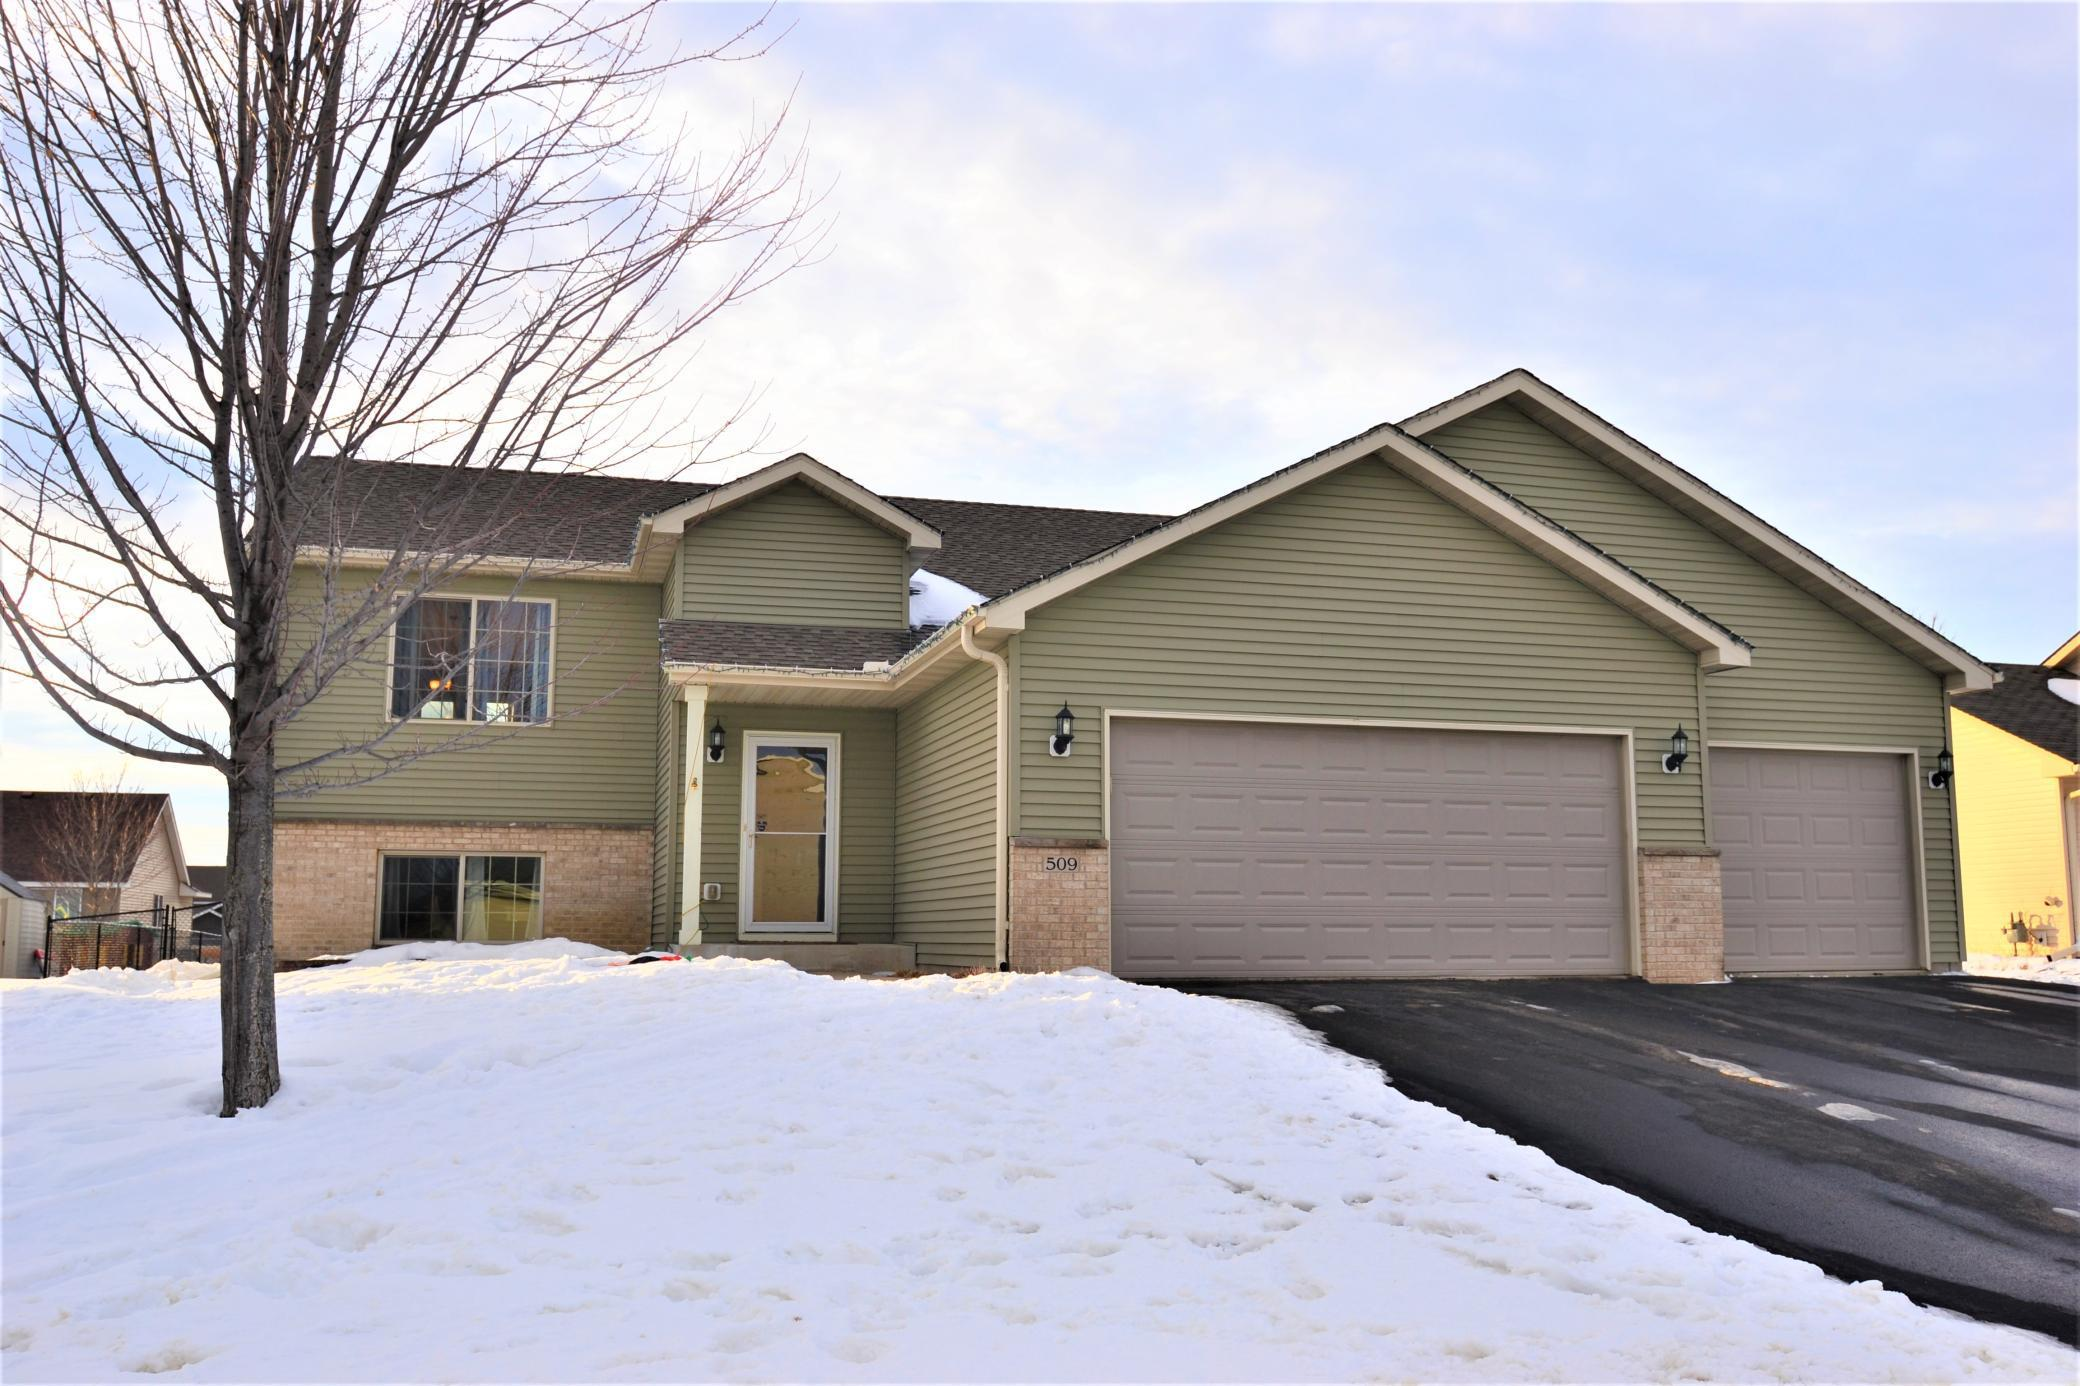 509 5th Avenue NE Property Photo - Lonsdale, MN real estate listing